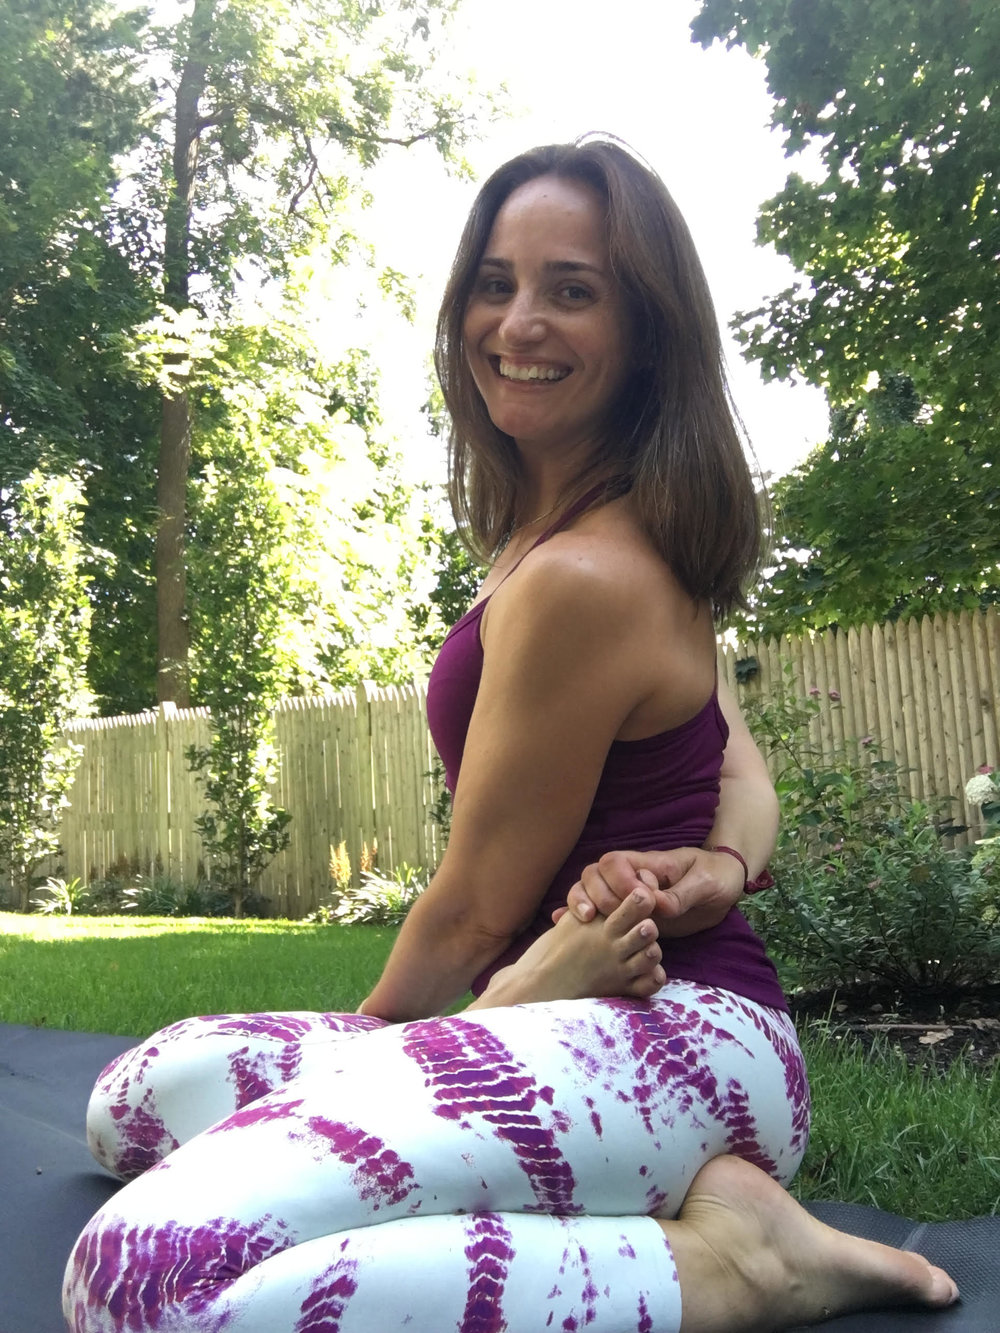 Meet Talita - Team Stamyo's Yoga Ambassador. She's here to answer all your Stamford Yoga questions. Click here to make an appointment with Talita.